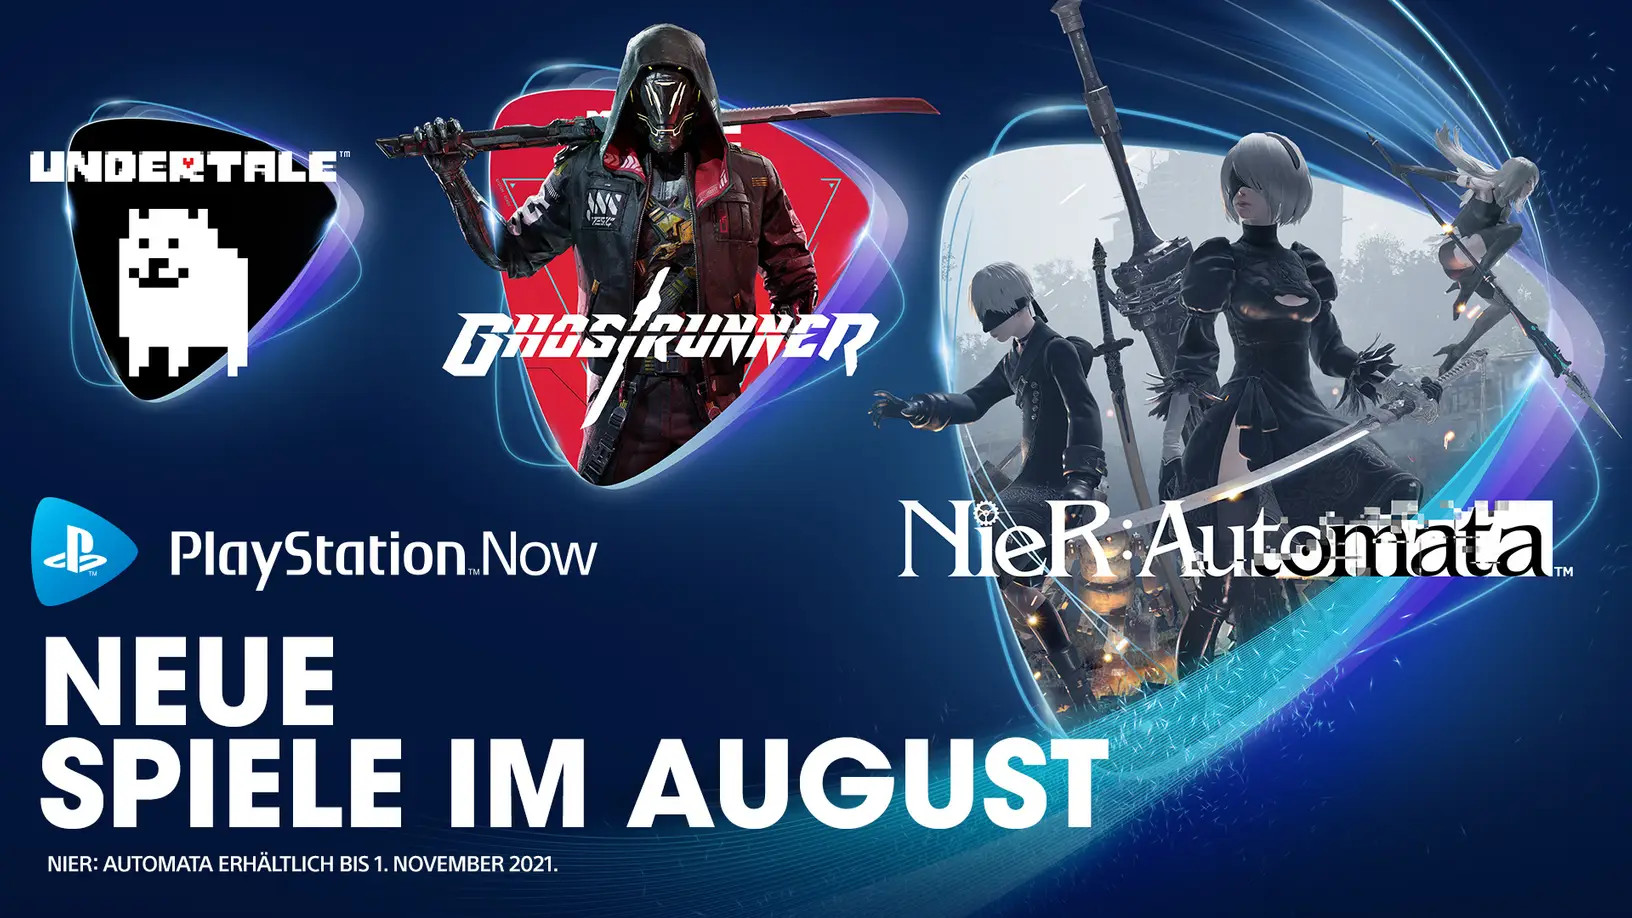 PlayStation Now: These games are waiting for you in August 2021